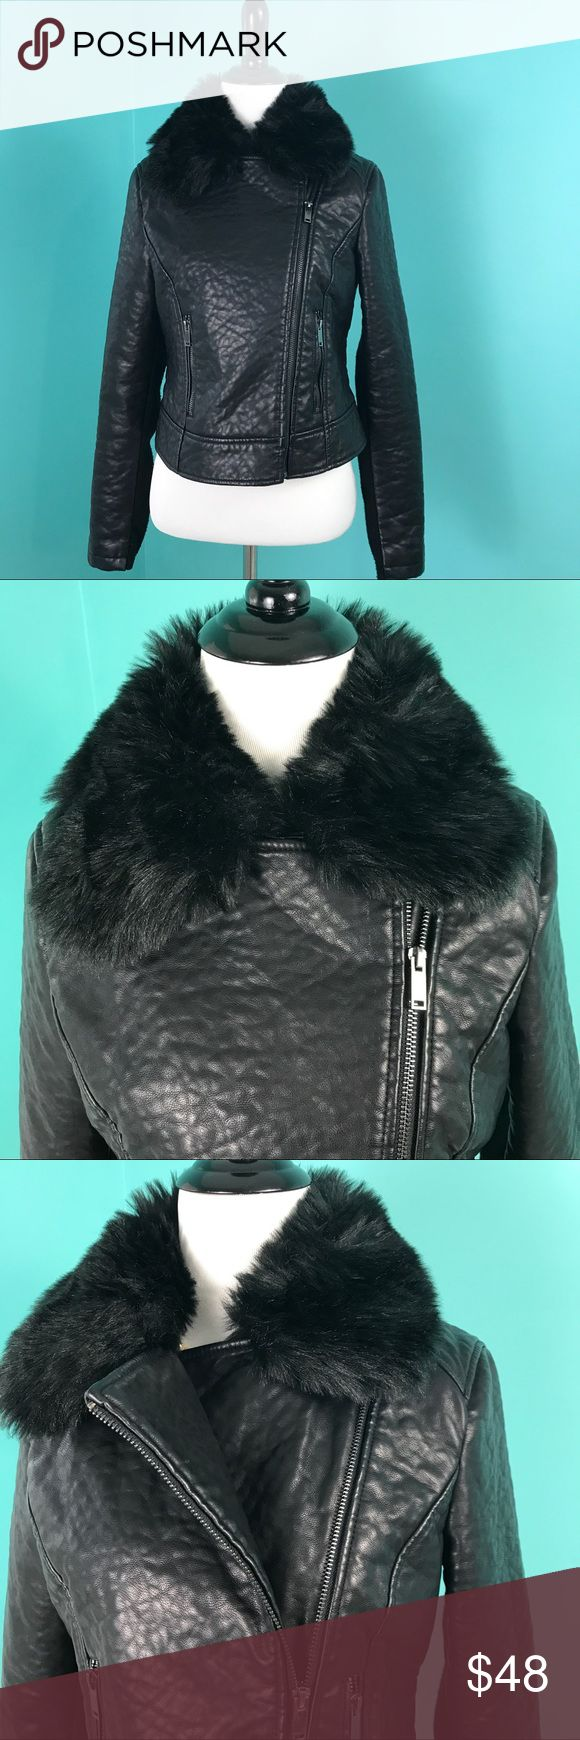 "Free People Black Faux Leather Fur Jacket Small Excellent jacket. Has a nice texture to it.  Very good condition. The ""leather"" is impeccable; just shows a little wear on the Knit/sweater-like fabric of the sleeves. Size Small. Free People Jackets & Coats"